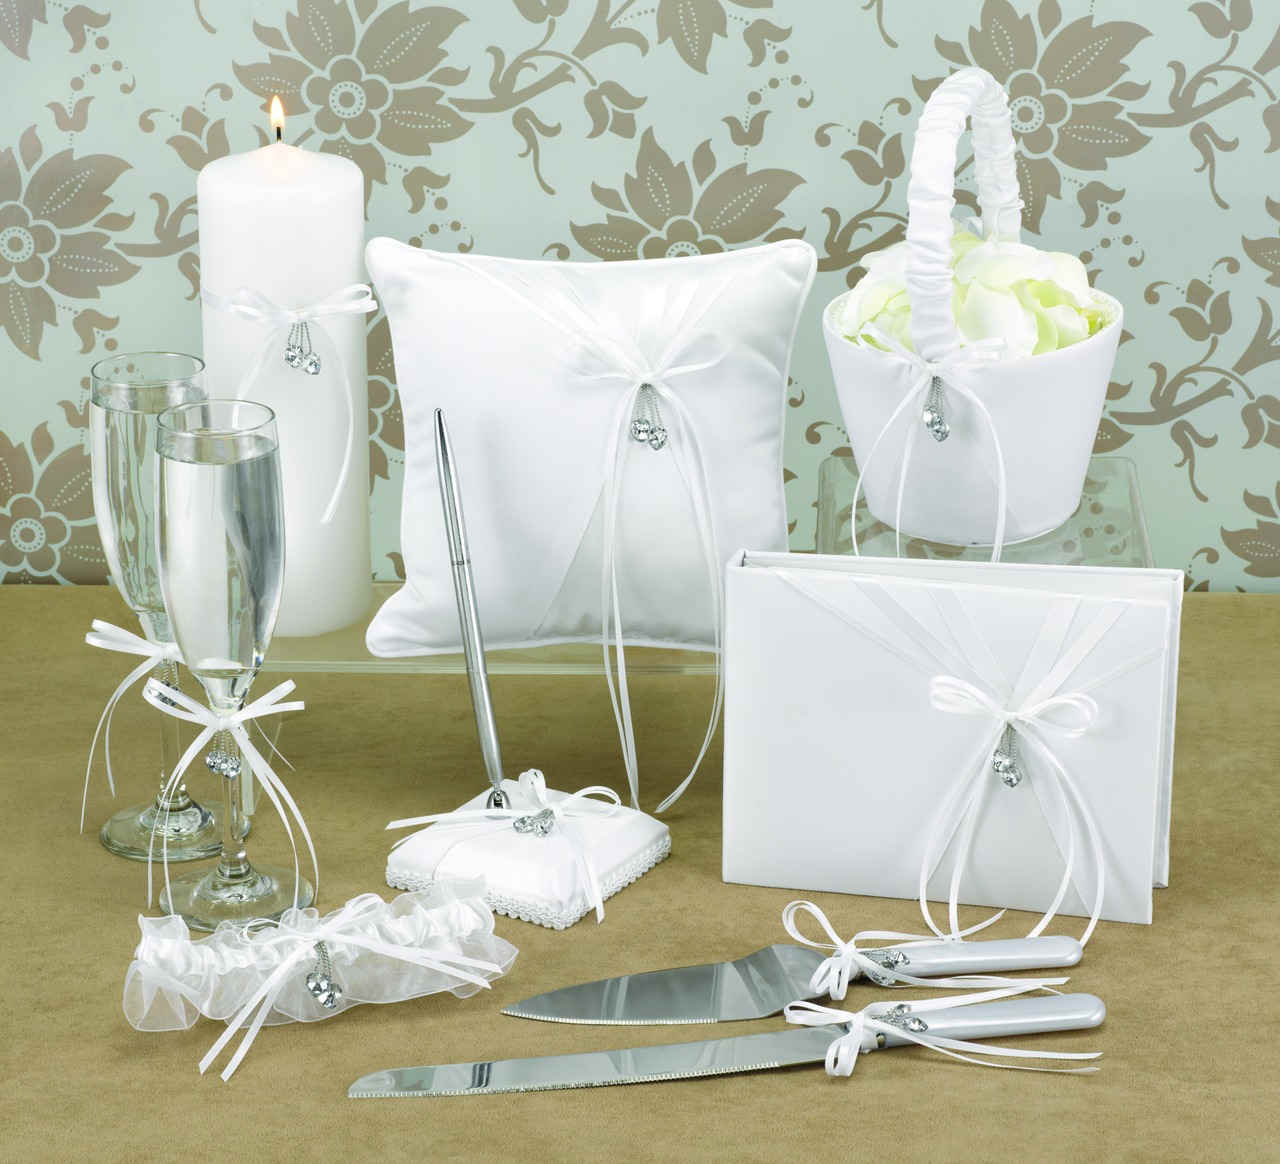 Wedding Supplies | Romantic Decoration